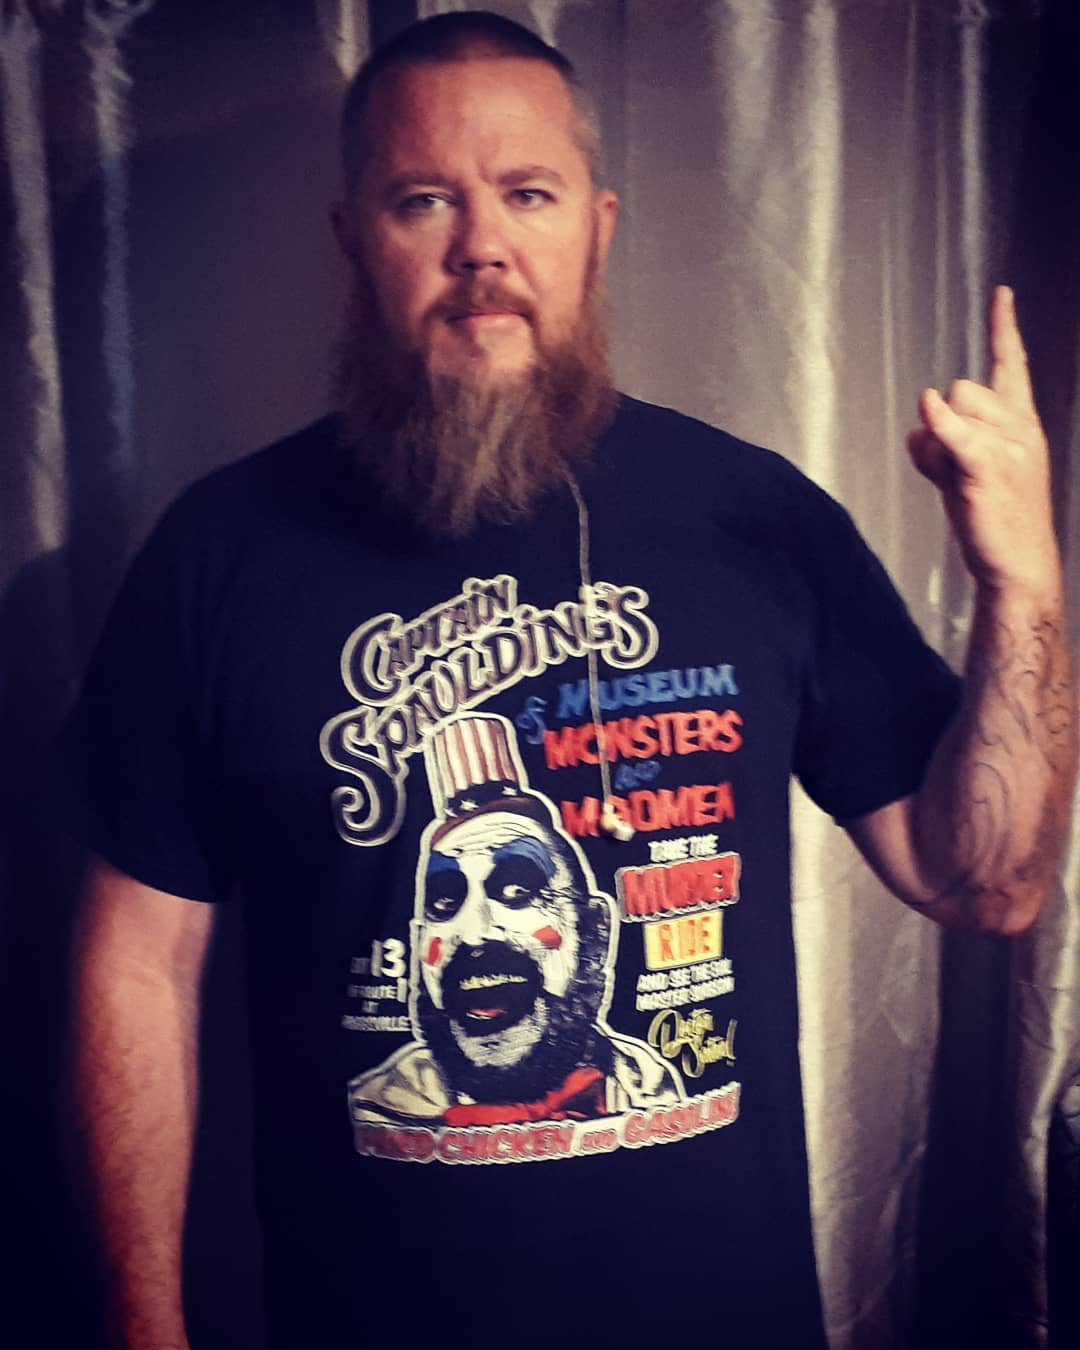 Captain Spaulding Poster Style Museum Monsters And Madman Shirts photo review